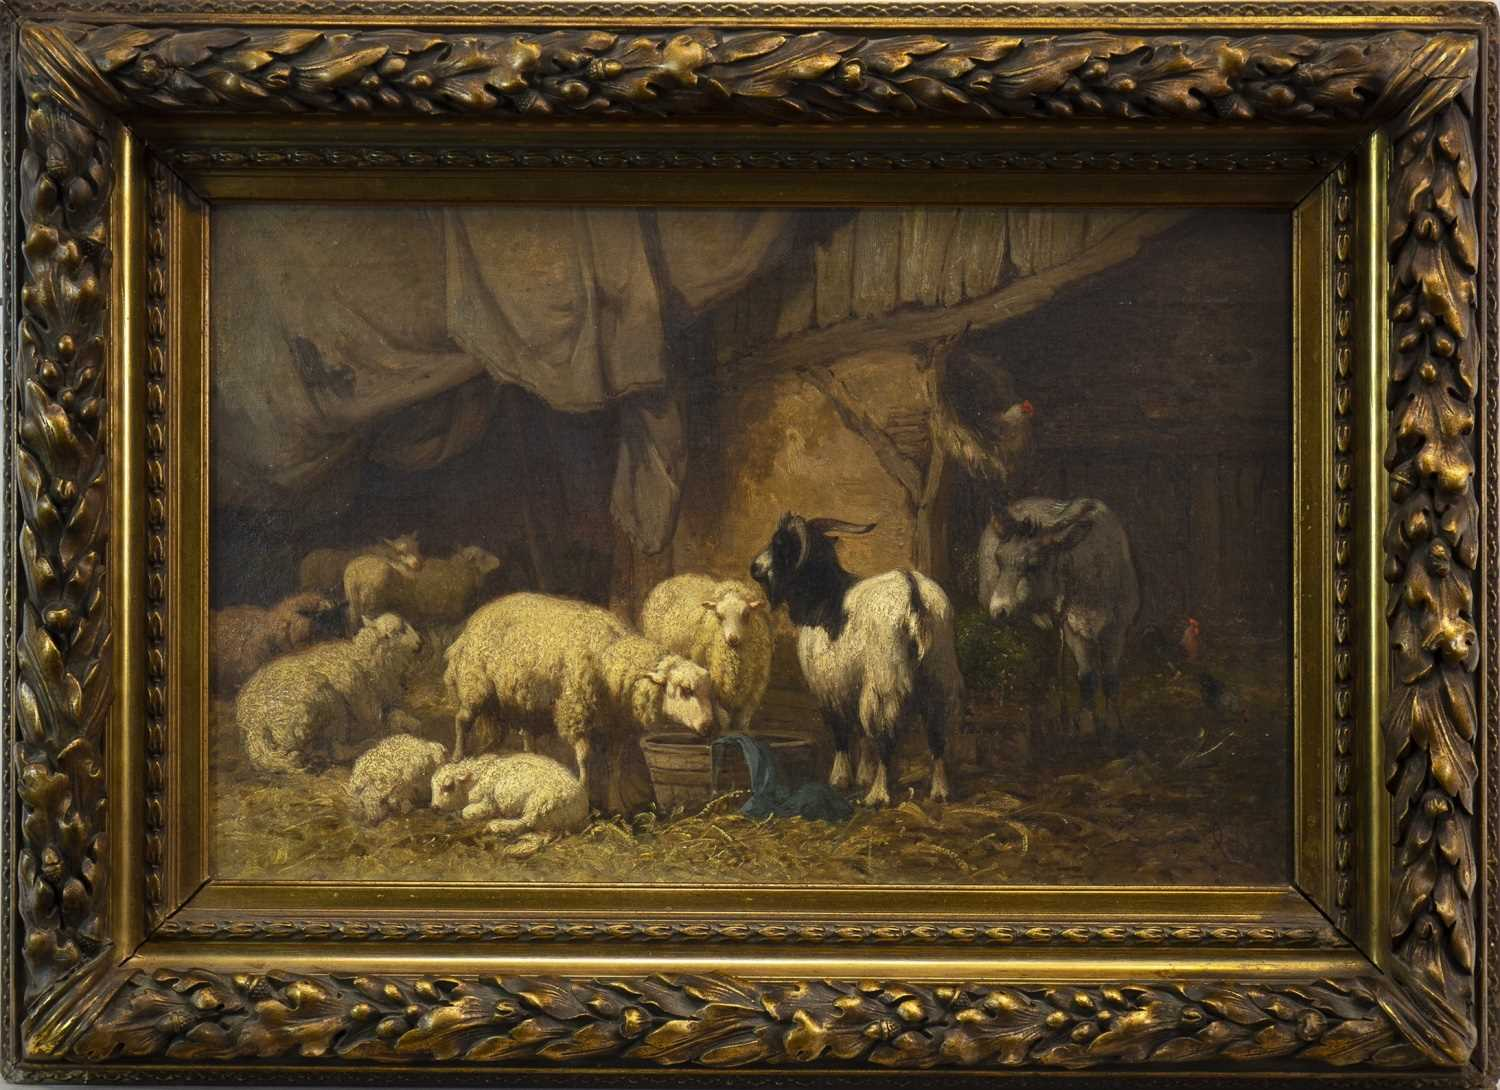 Lot 429-SHEEP, DONKEY AND GOAT IN A BARN, AN OIL BY LOUIS ROBBE